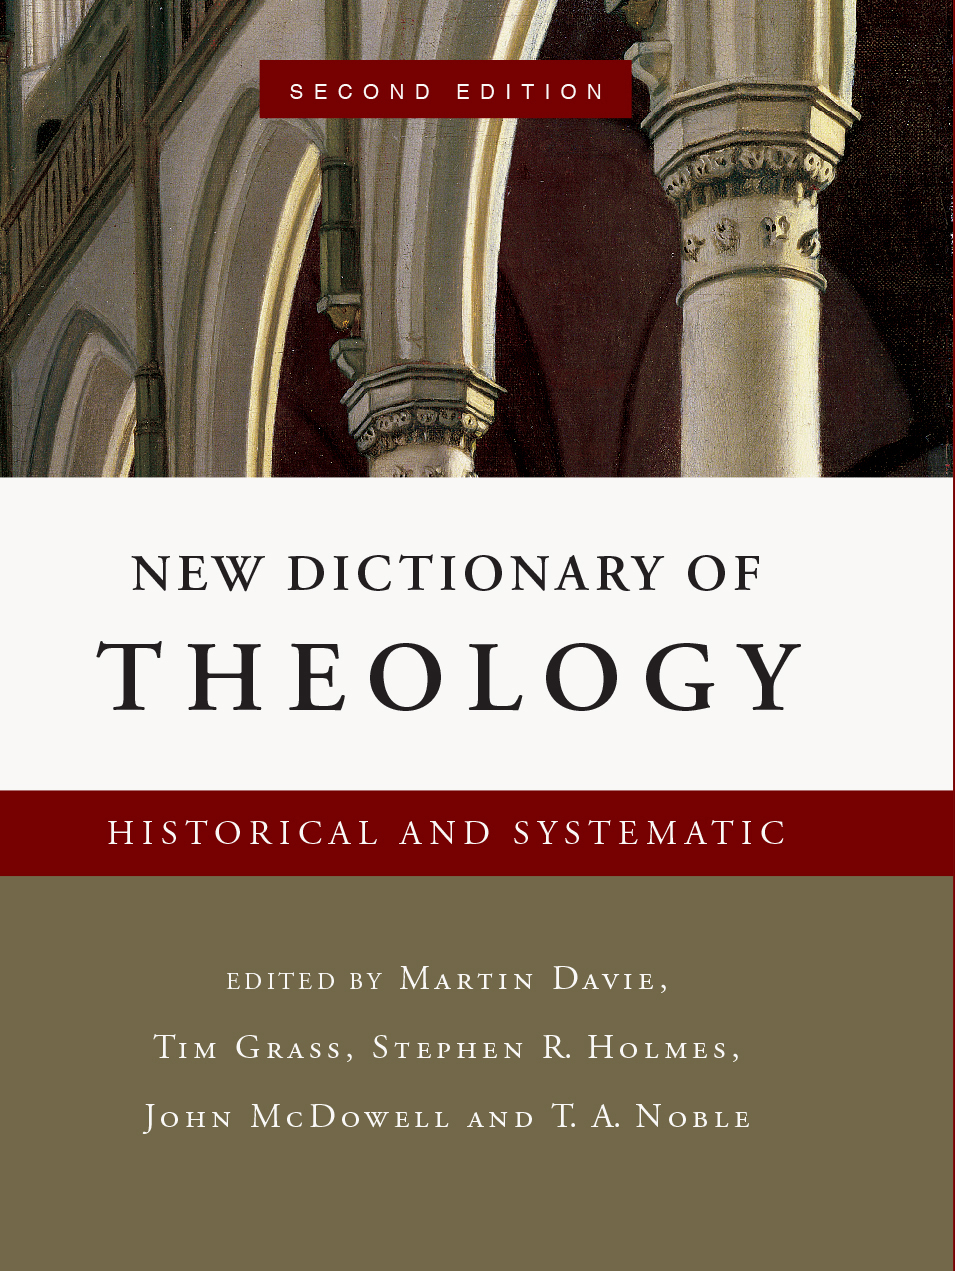 new dictionary of theology ivp